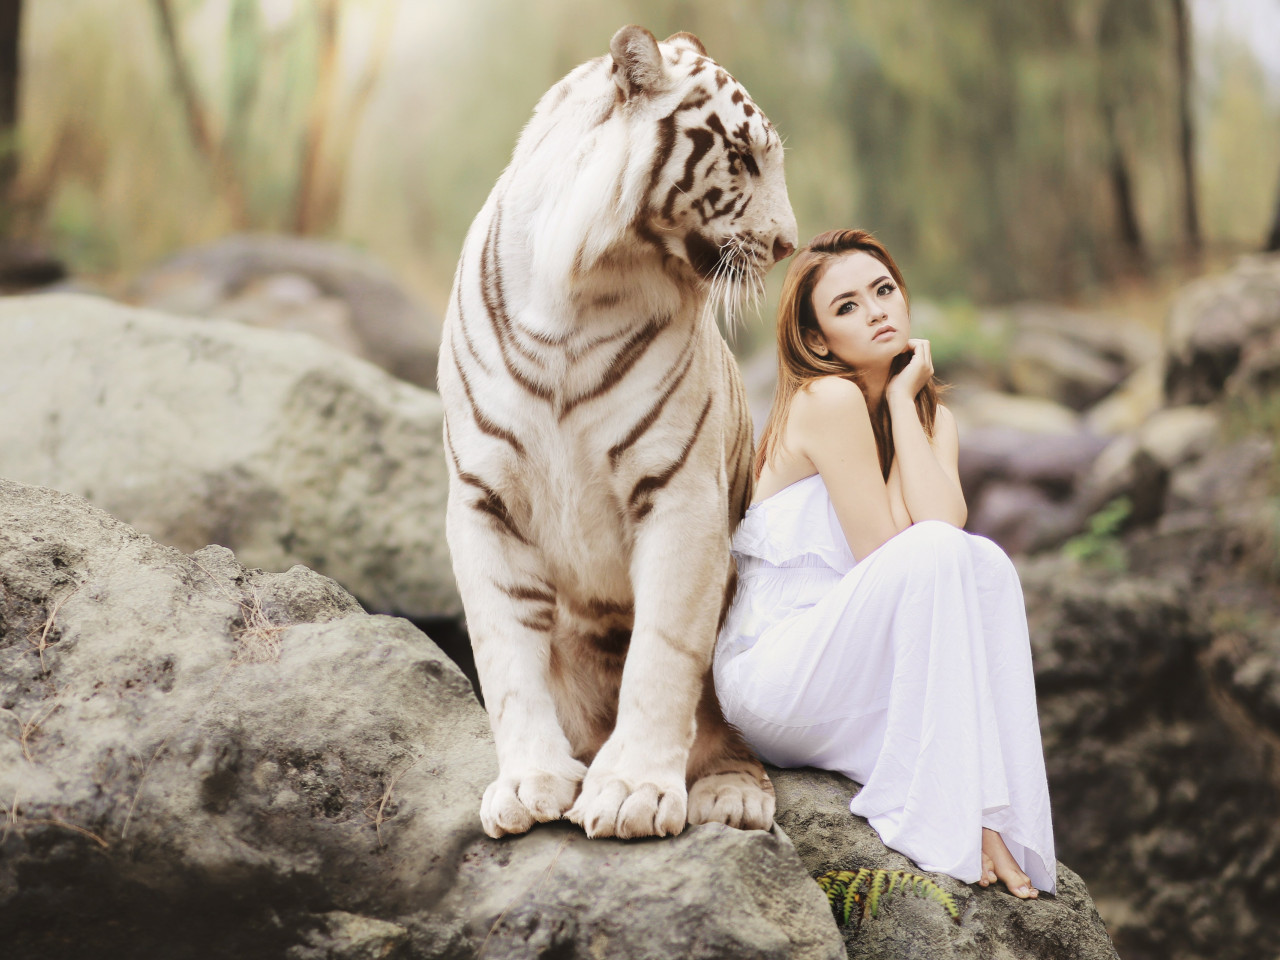 Bengal tiger and a beautiful girl wallpaper 1280x960